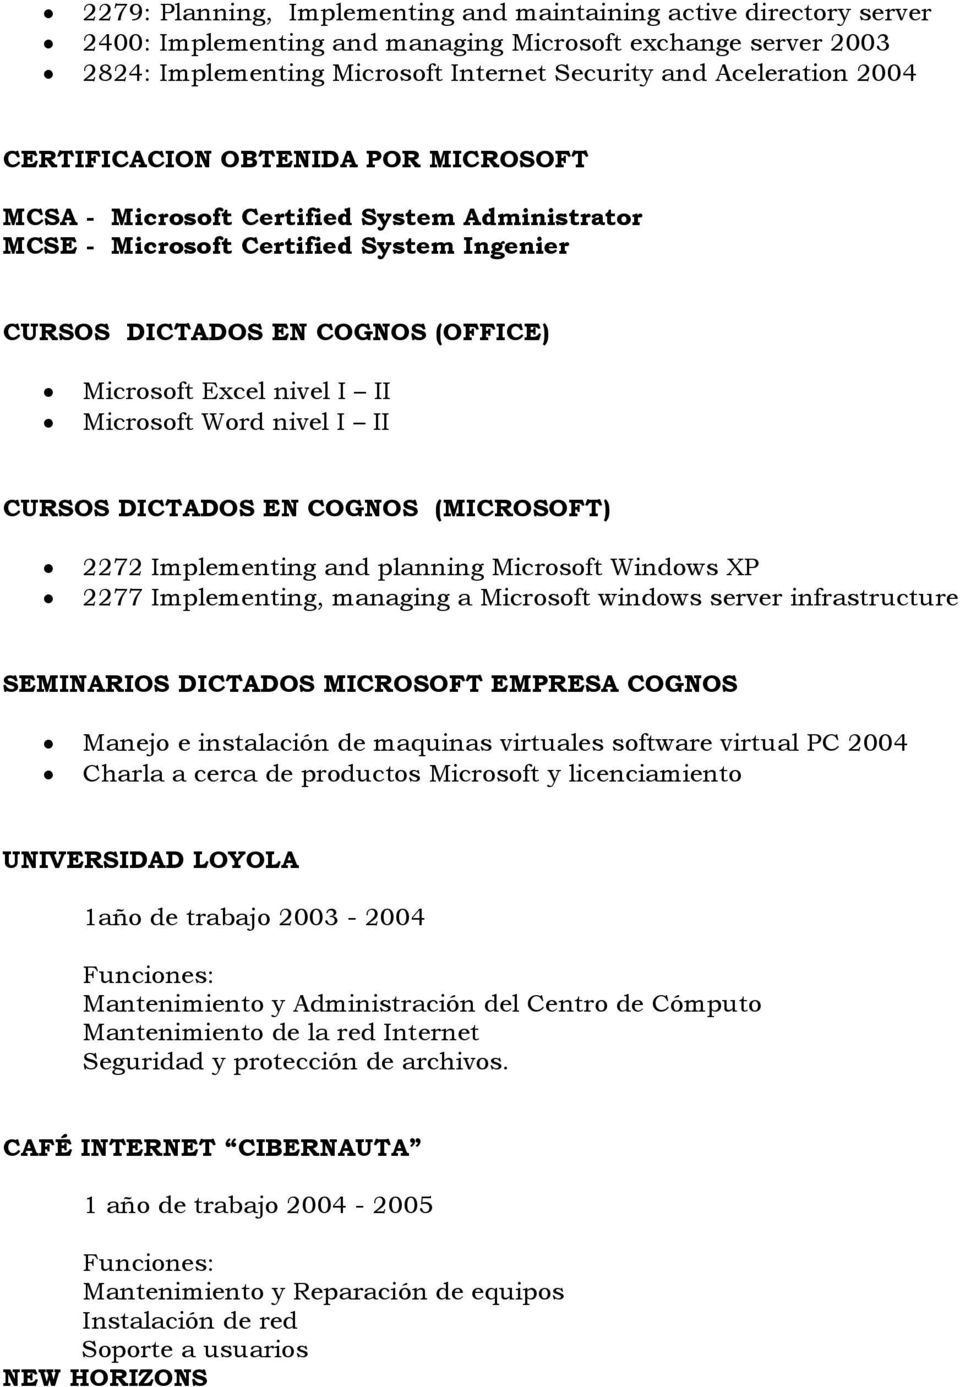 Word nivel I II CURSOS DICTADOS EN COGNOS (MICROSOFT) 2272 Implementing and planning Microsoft Windows XP 2277 Implementing, managing a Microsoft windows server infrastructure SEMINARIOS DICTADOS